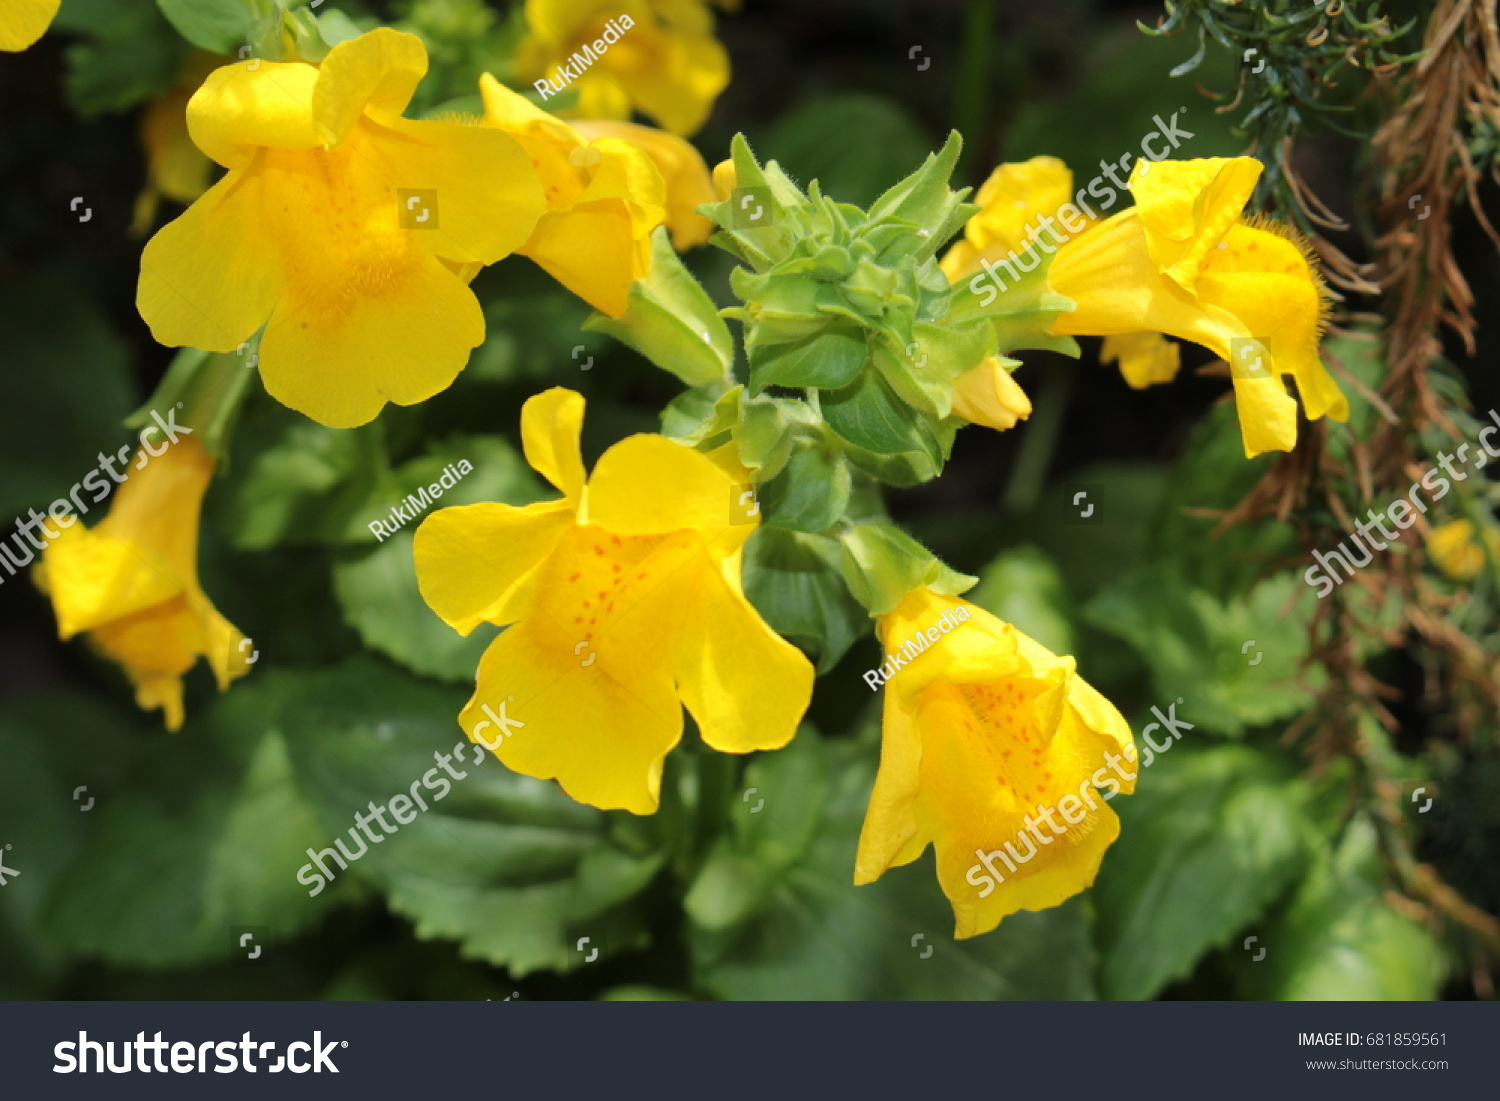 Red Spotted Yellow Monkey Flower Or Musk Flower Blood Drop Emlet